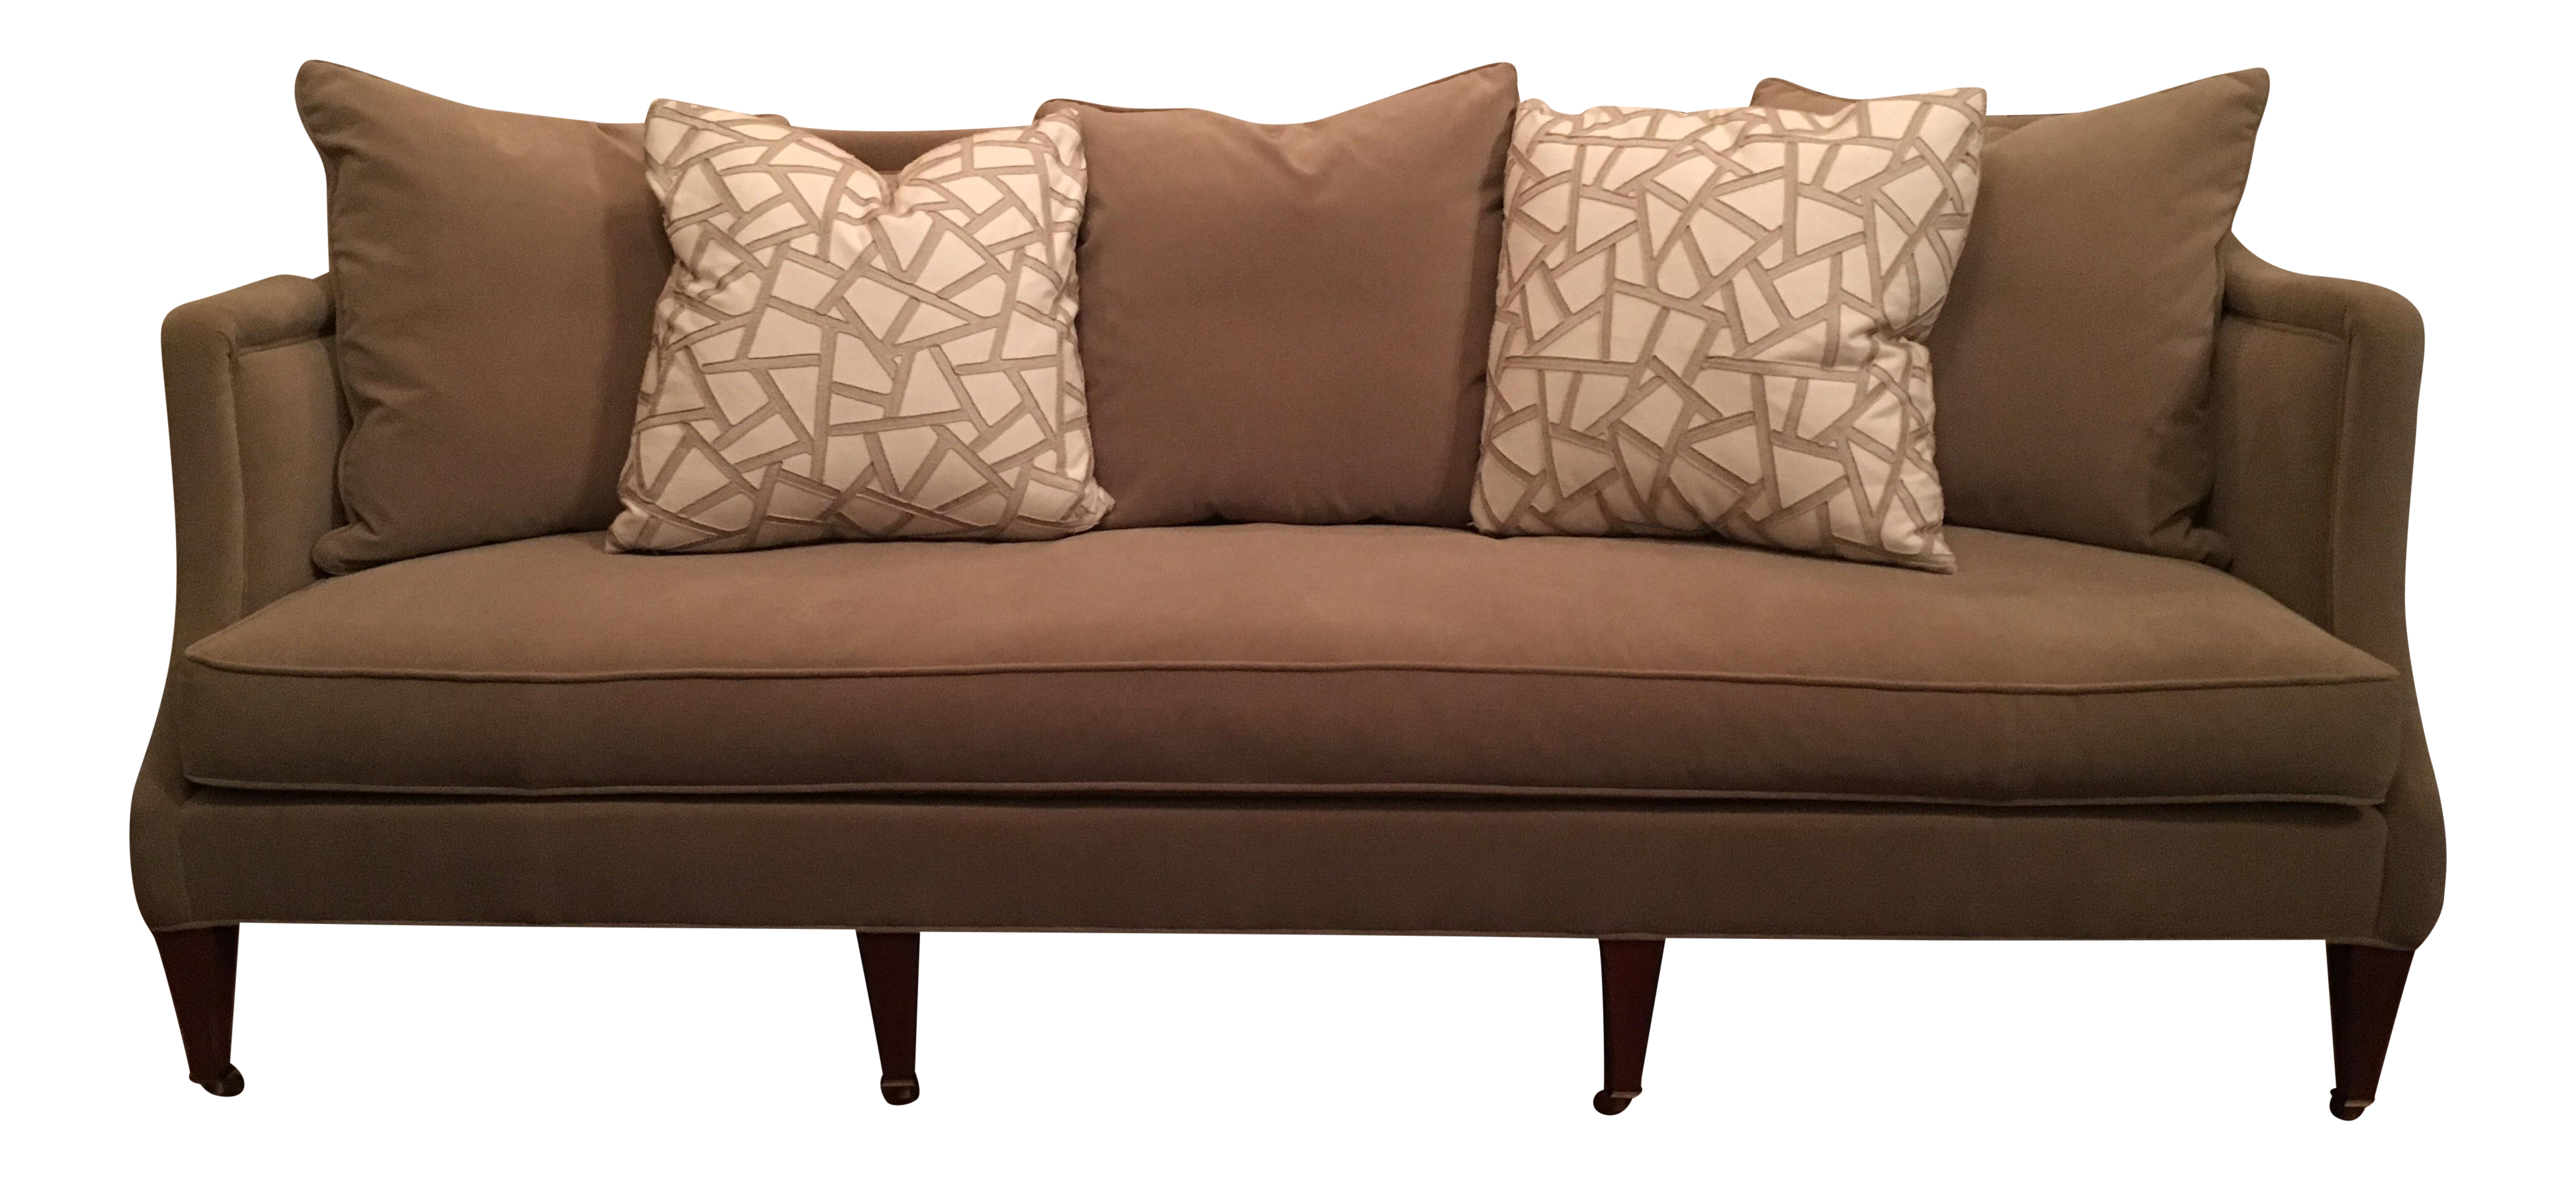 Hickory Chair Co. Contemporary Sofa on